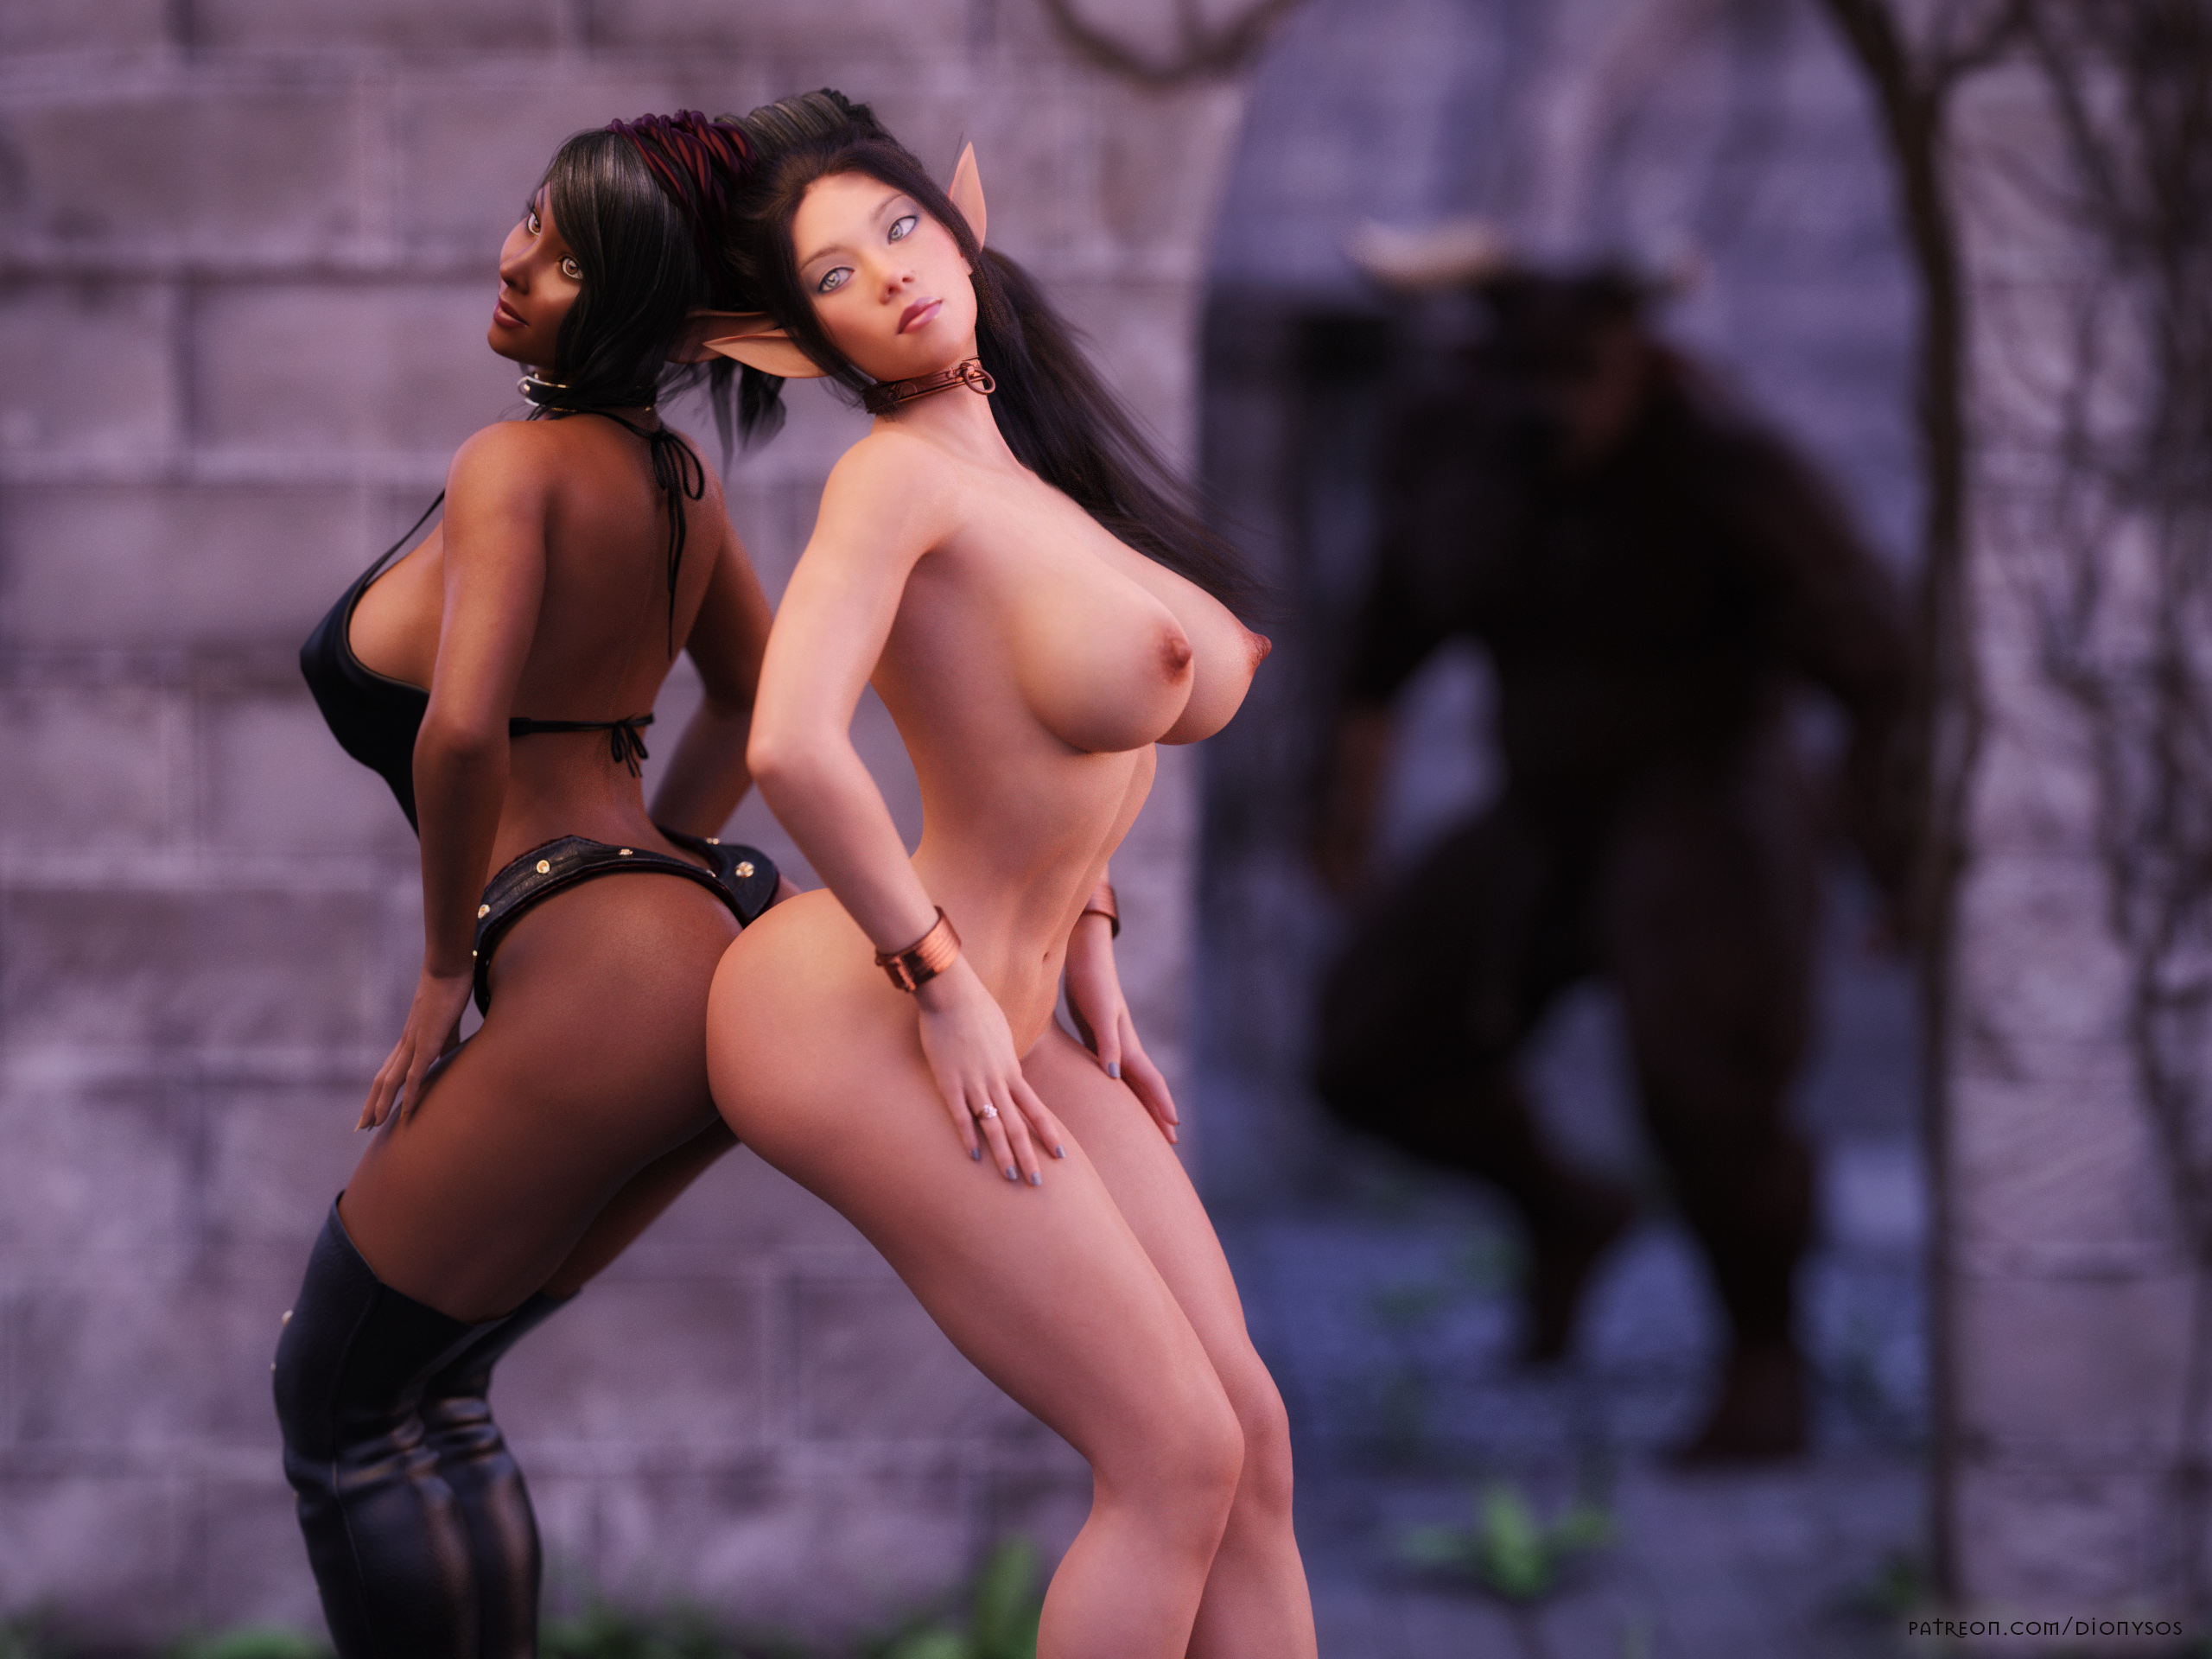 QHD Wallpaper with two busty elves Nia and Jely'ria